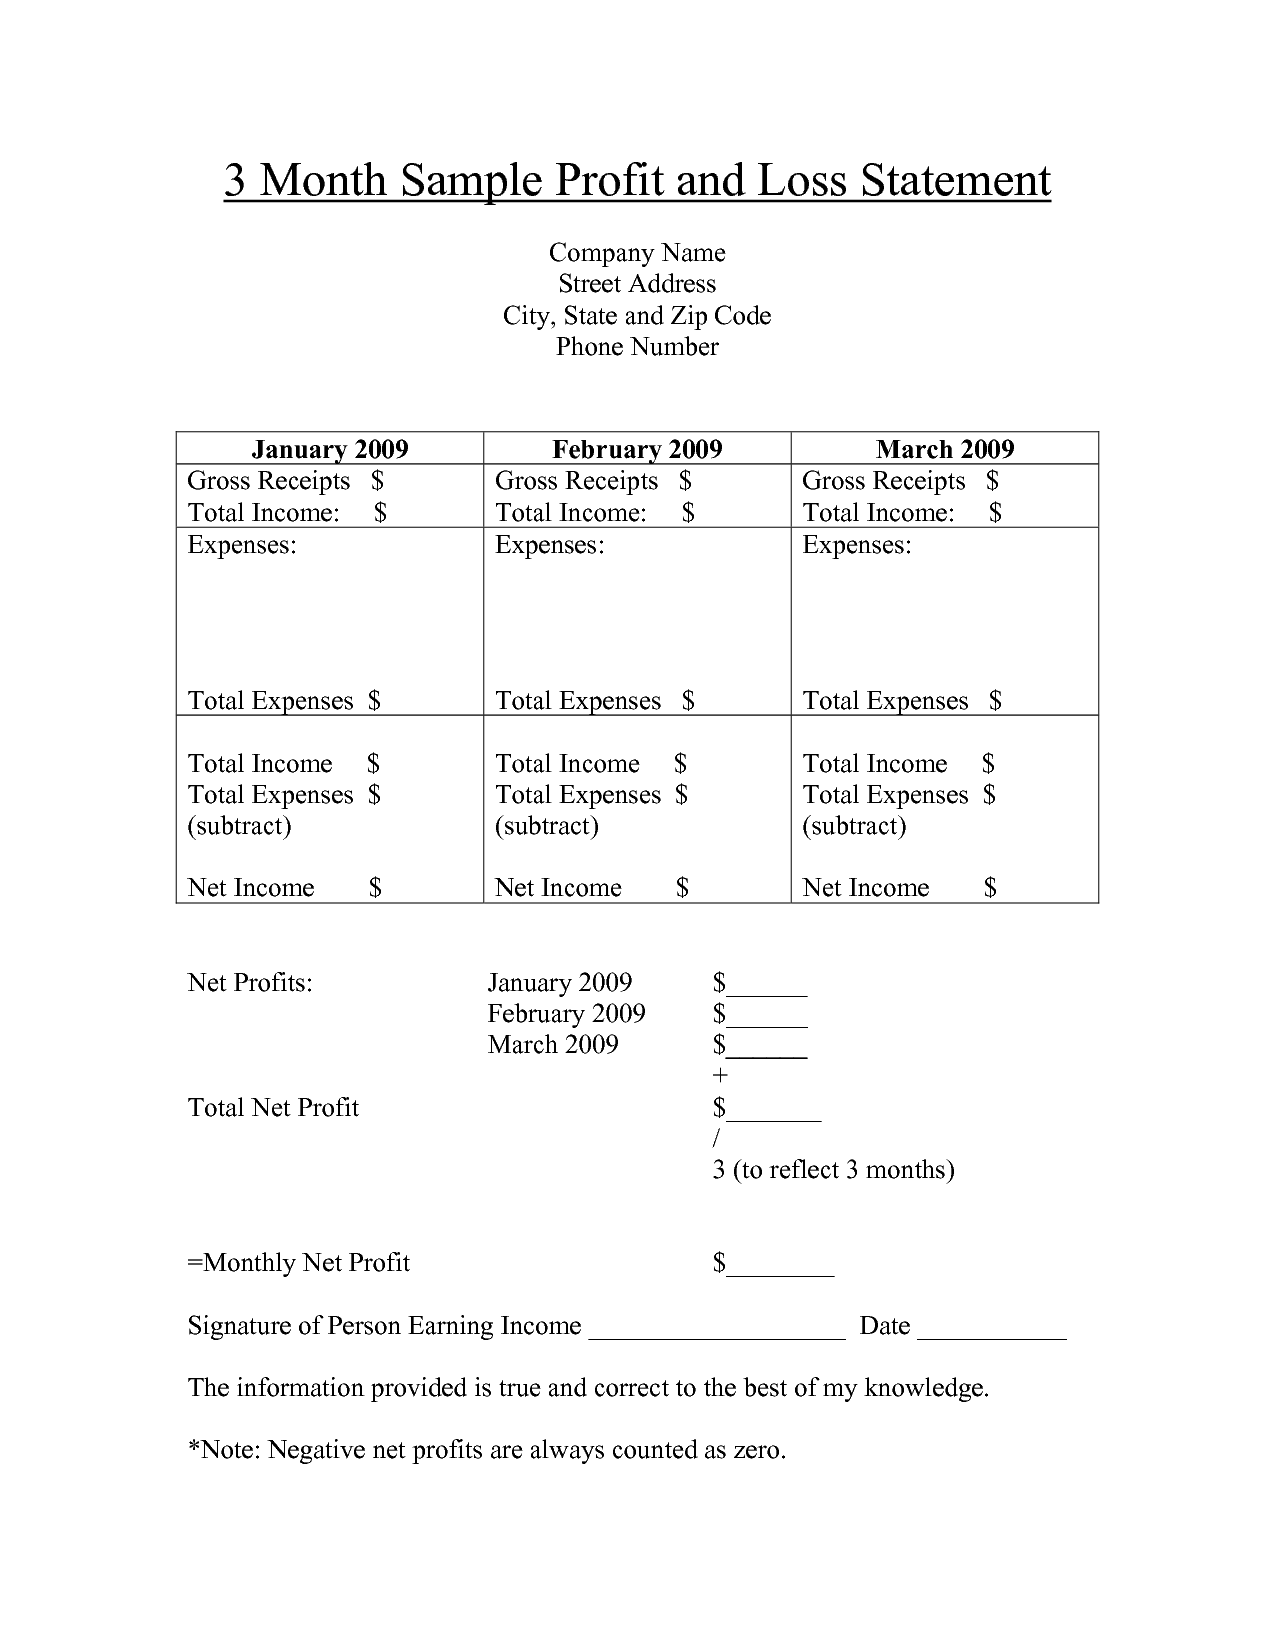 Free Printable Profit and Loss Statement Form for Home Care Bing – Sample Profit and Loss Form